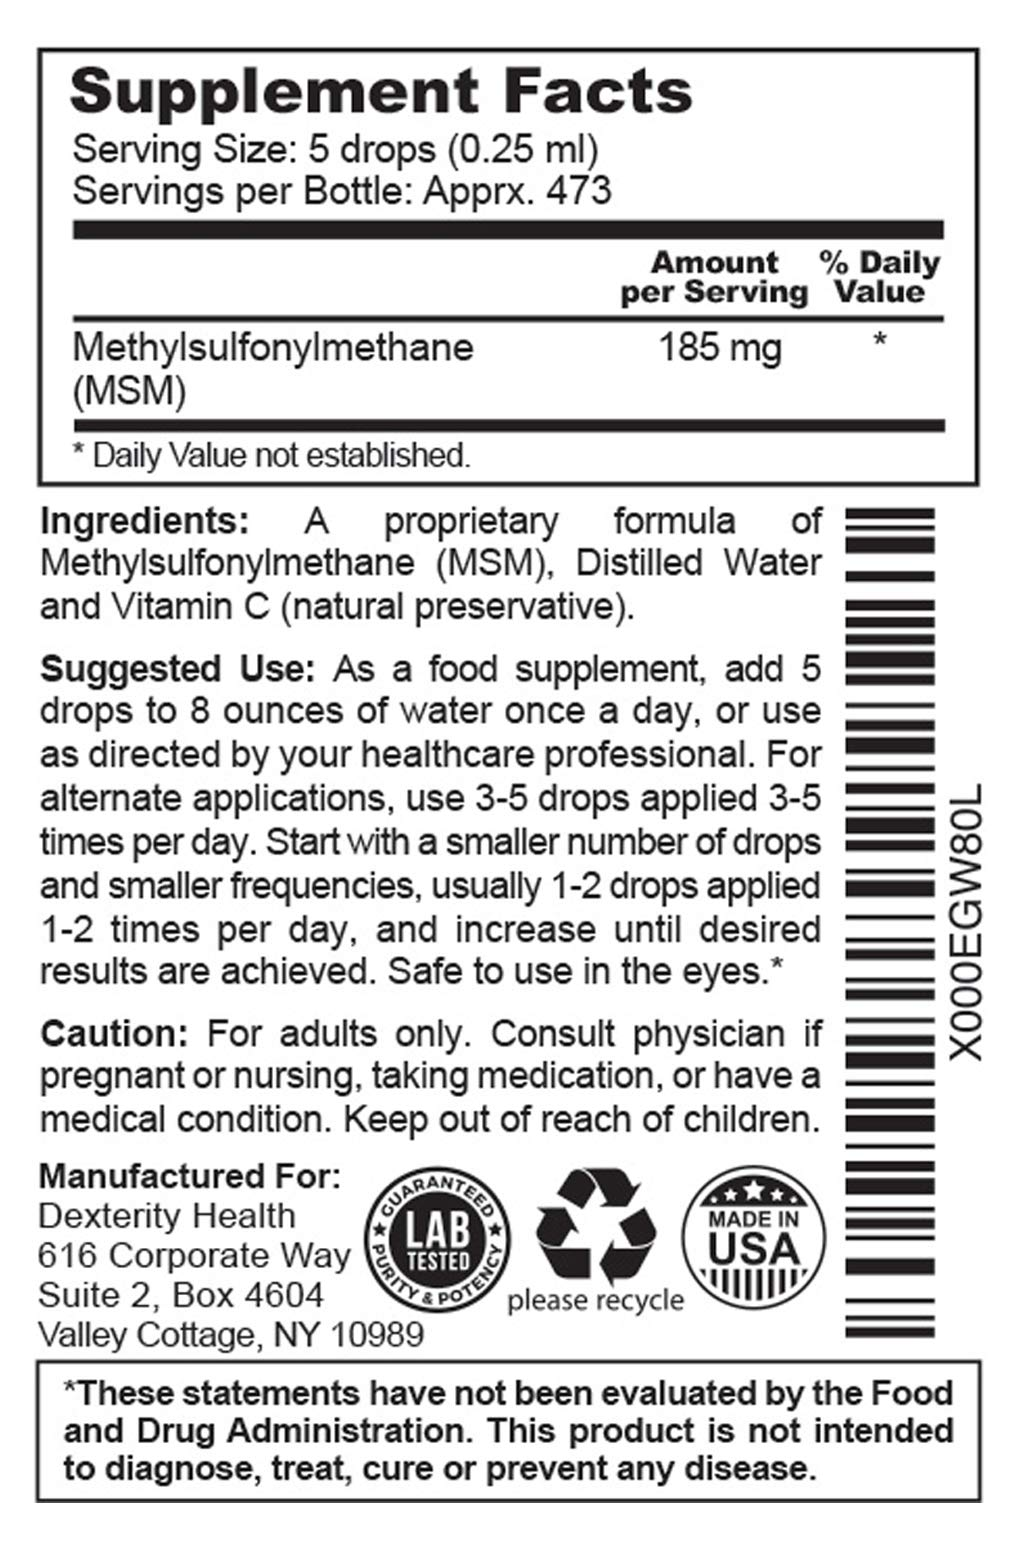 Dexterity Health Liquid MSM Drops, 3-Pack of 4 oz. Dropper-Top Bottles, 100% Sterile, Vegan, All-Natural and Non-GMO, Contains Organic MSM, Contains Vitamin C as a Natural Preservative